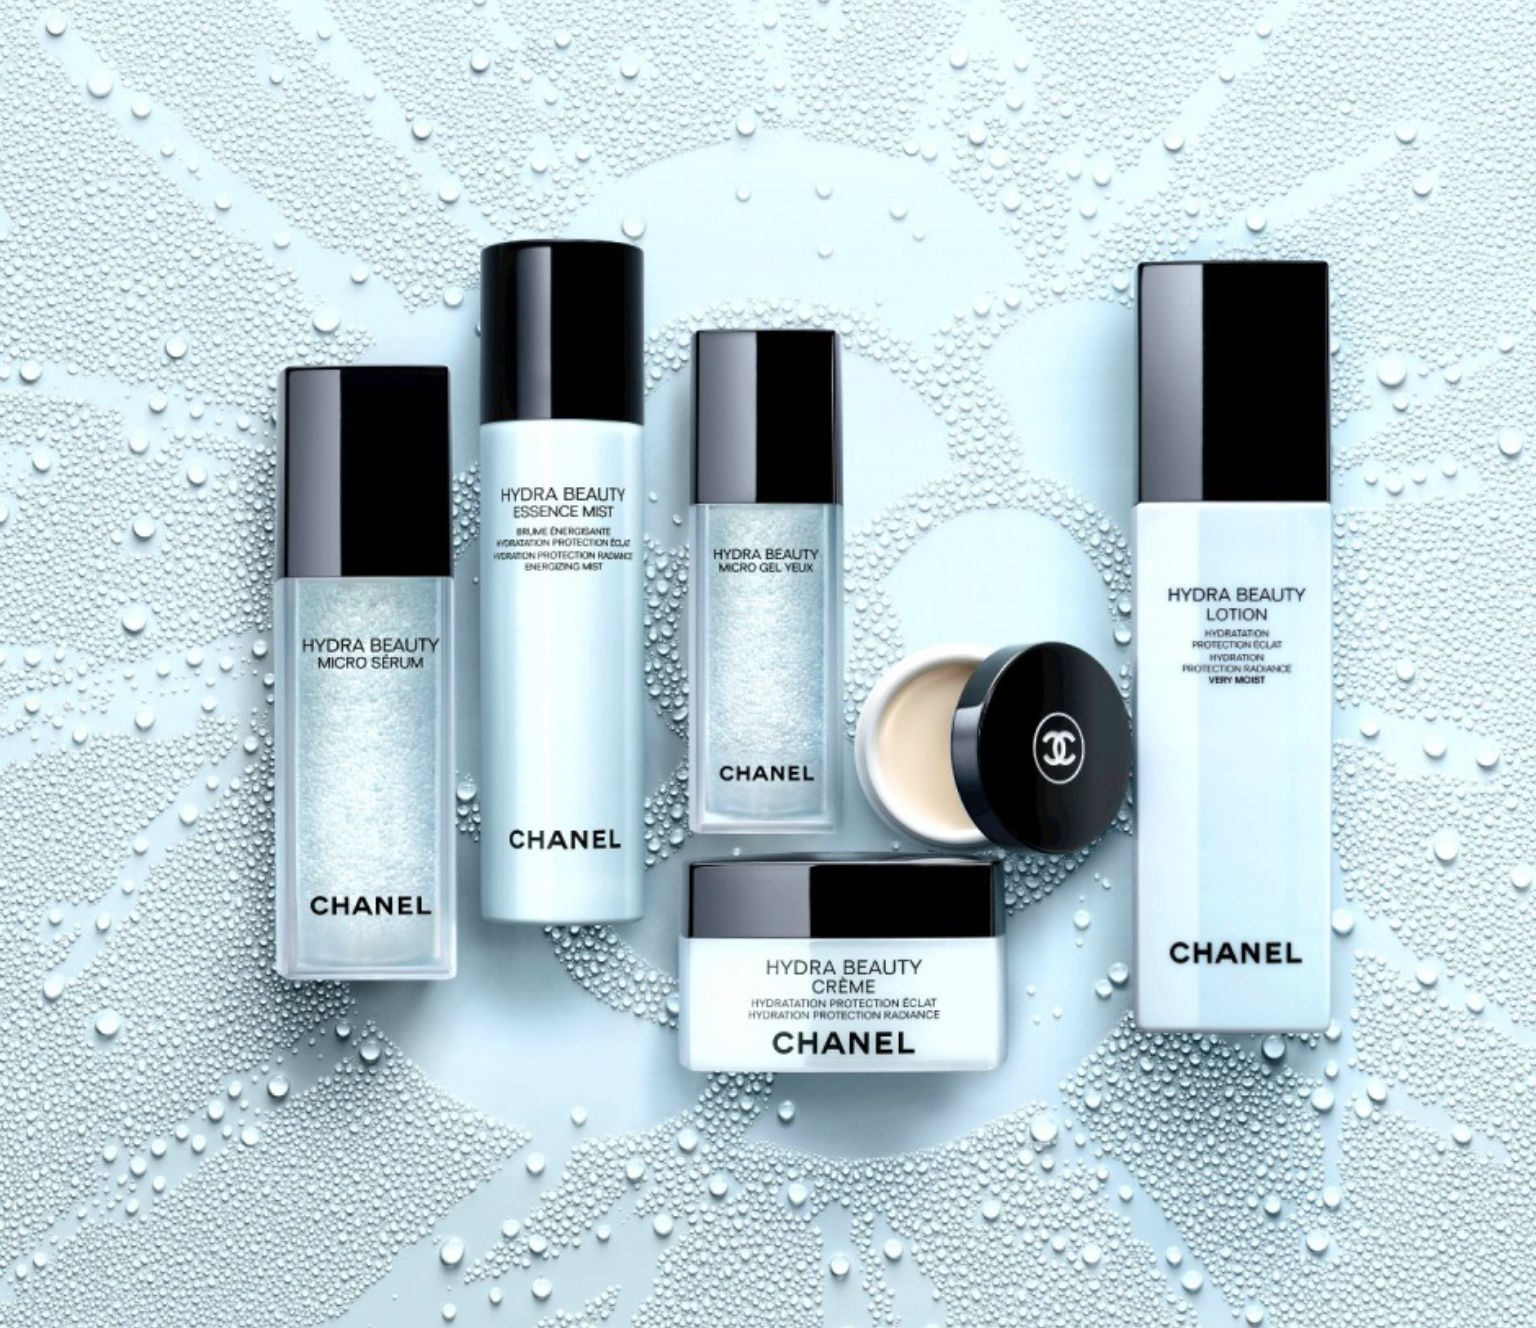 a4f9b104ac5f Breaking Stereotypes with Chanel's Men's Makeup | Chanel | Chanel men, Male  makeup, Makeup